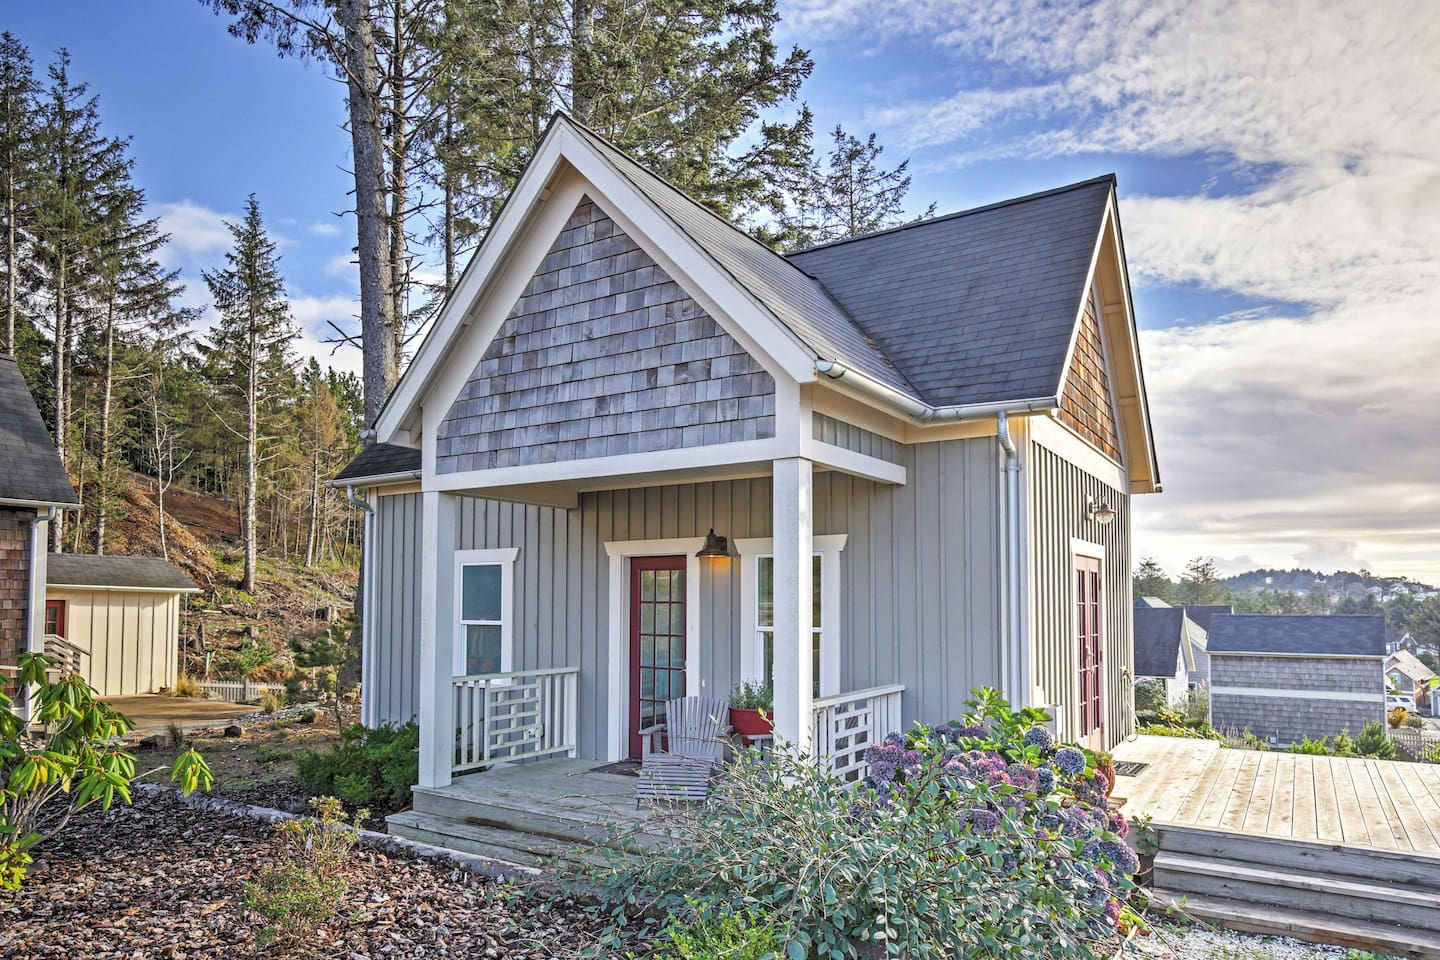 The lovely By-the-Wind Sailor is an adorable beach cottage in the Olivia Beach Camp Cabins complex. This is the smaller of the two listings; the other listing also includes an in-law suite.